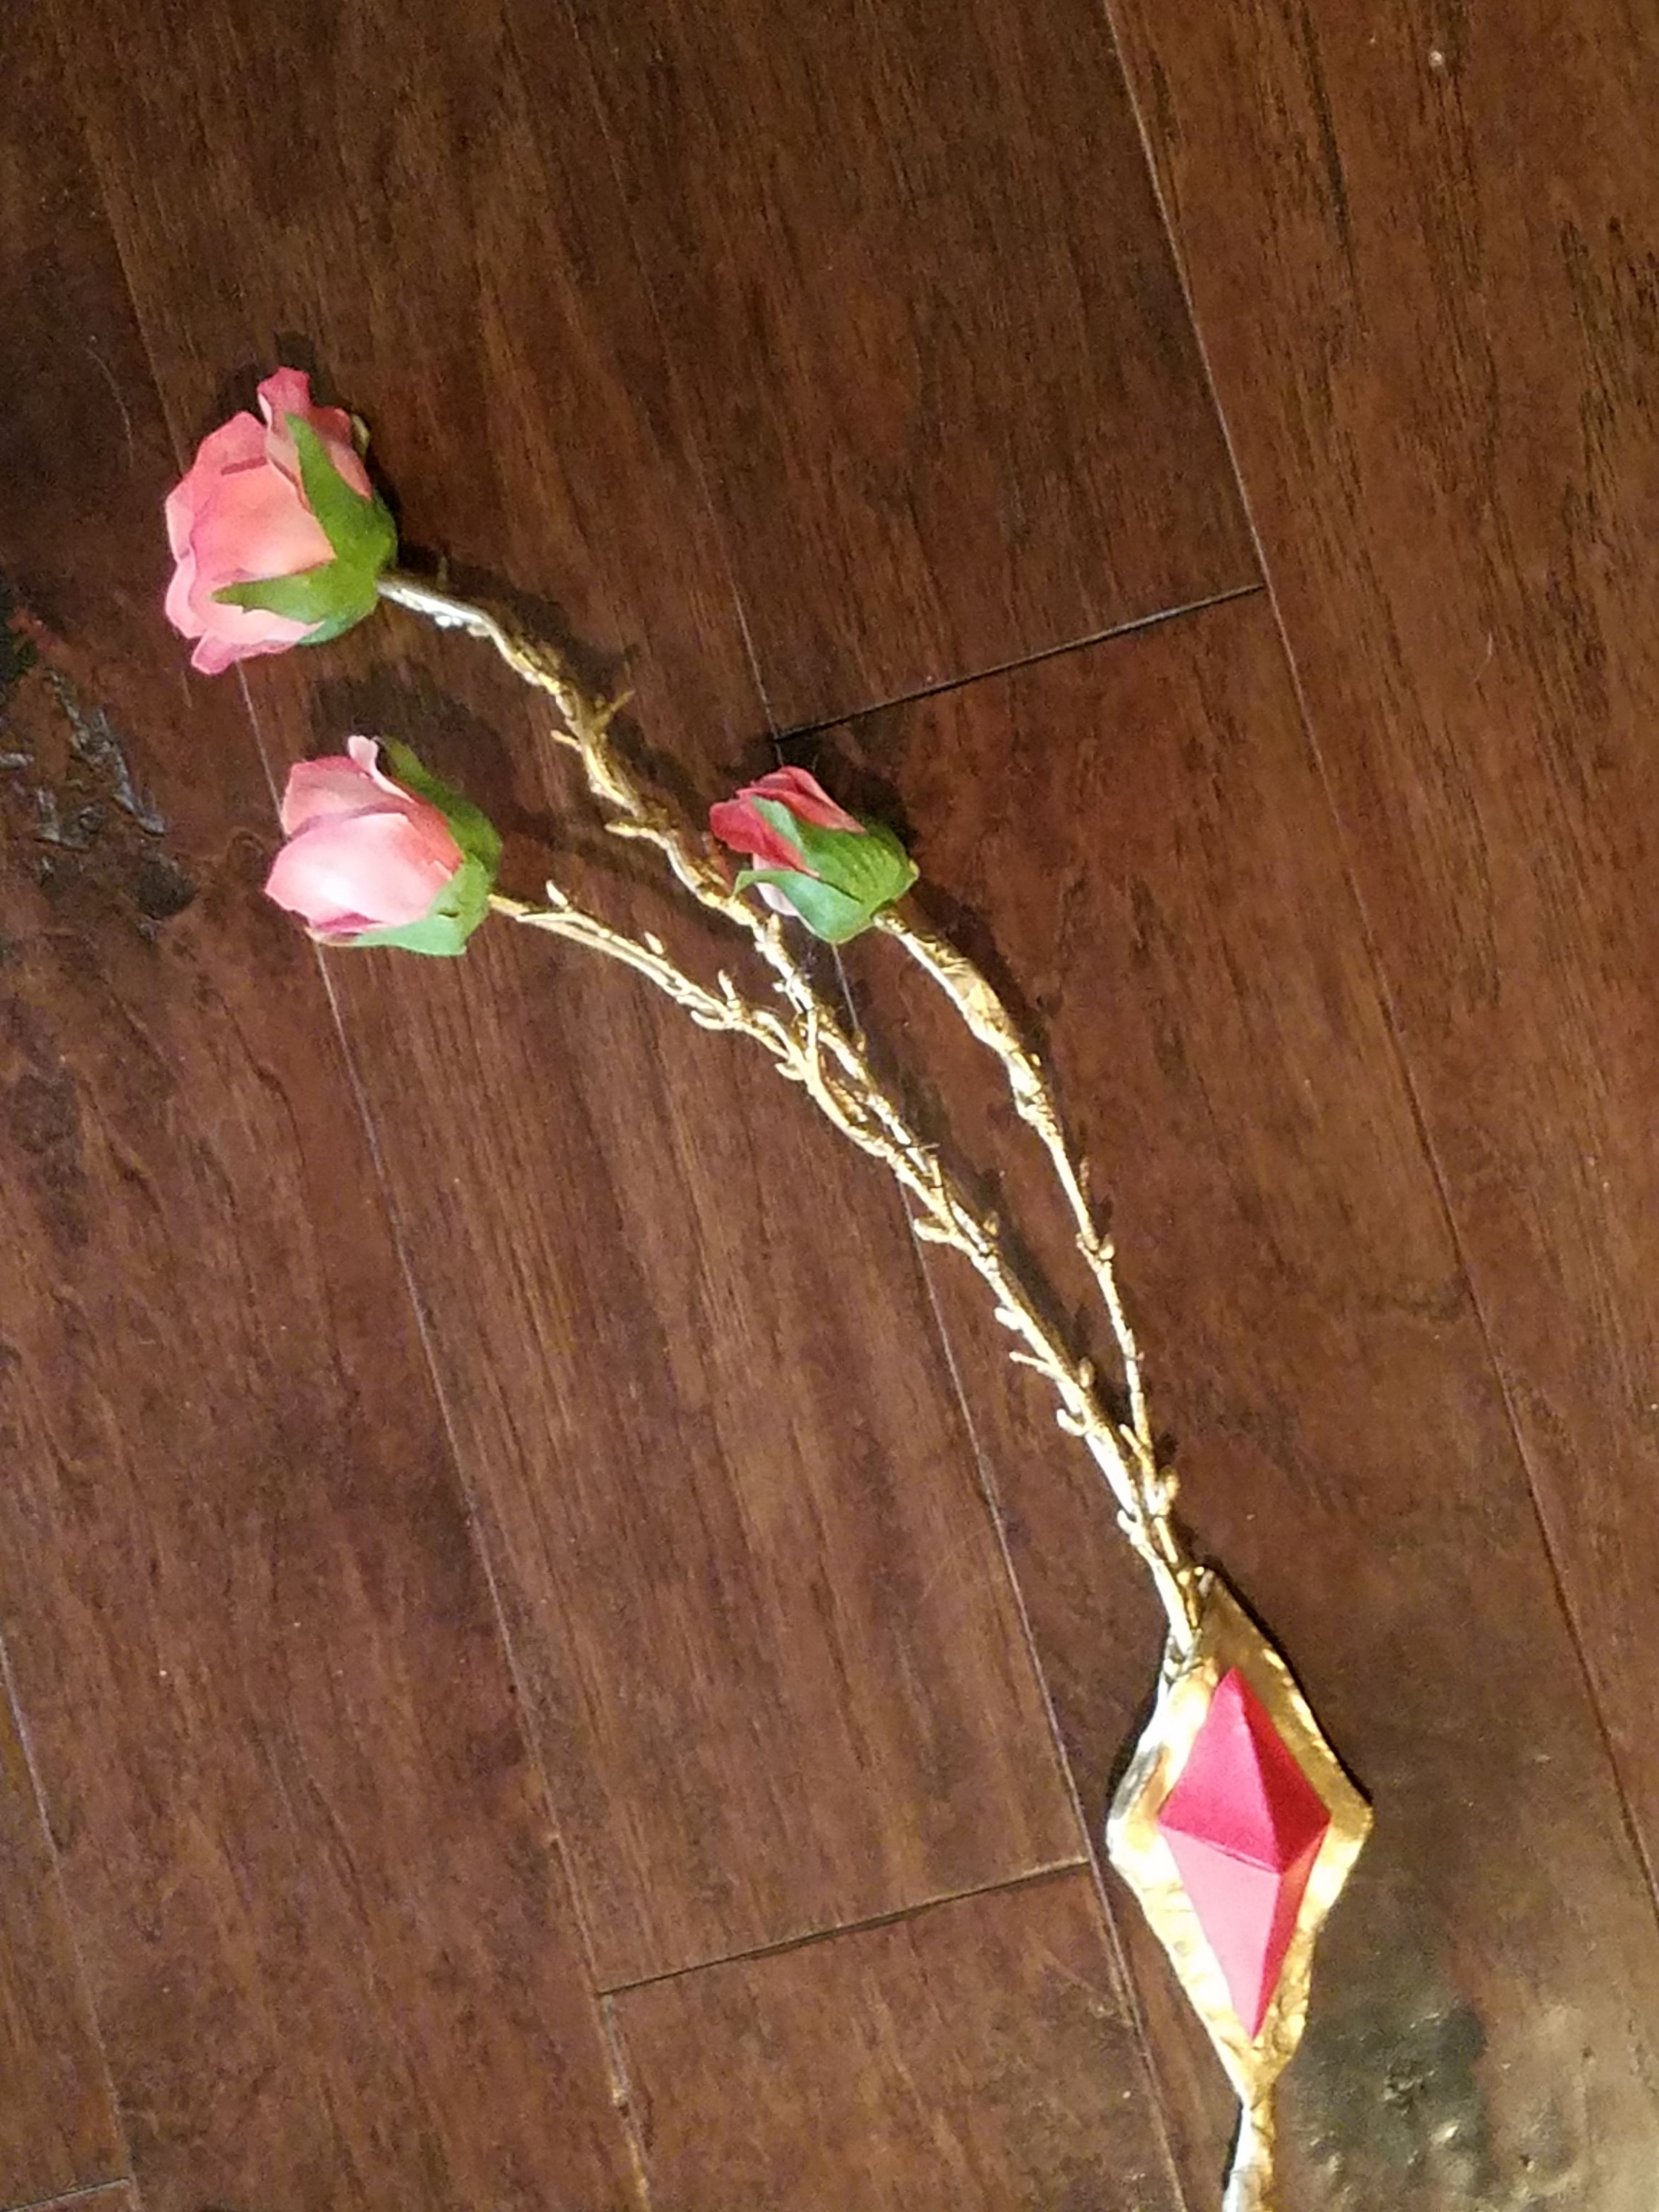 Picture of Madoka Kaname Magical Flower Bow and Arrow Set (cosplay Magical Girl)